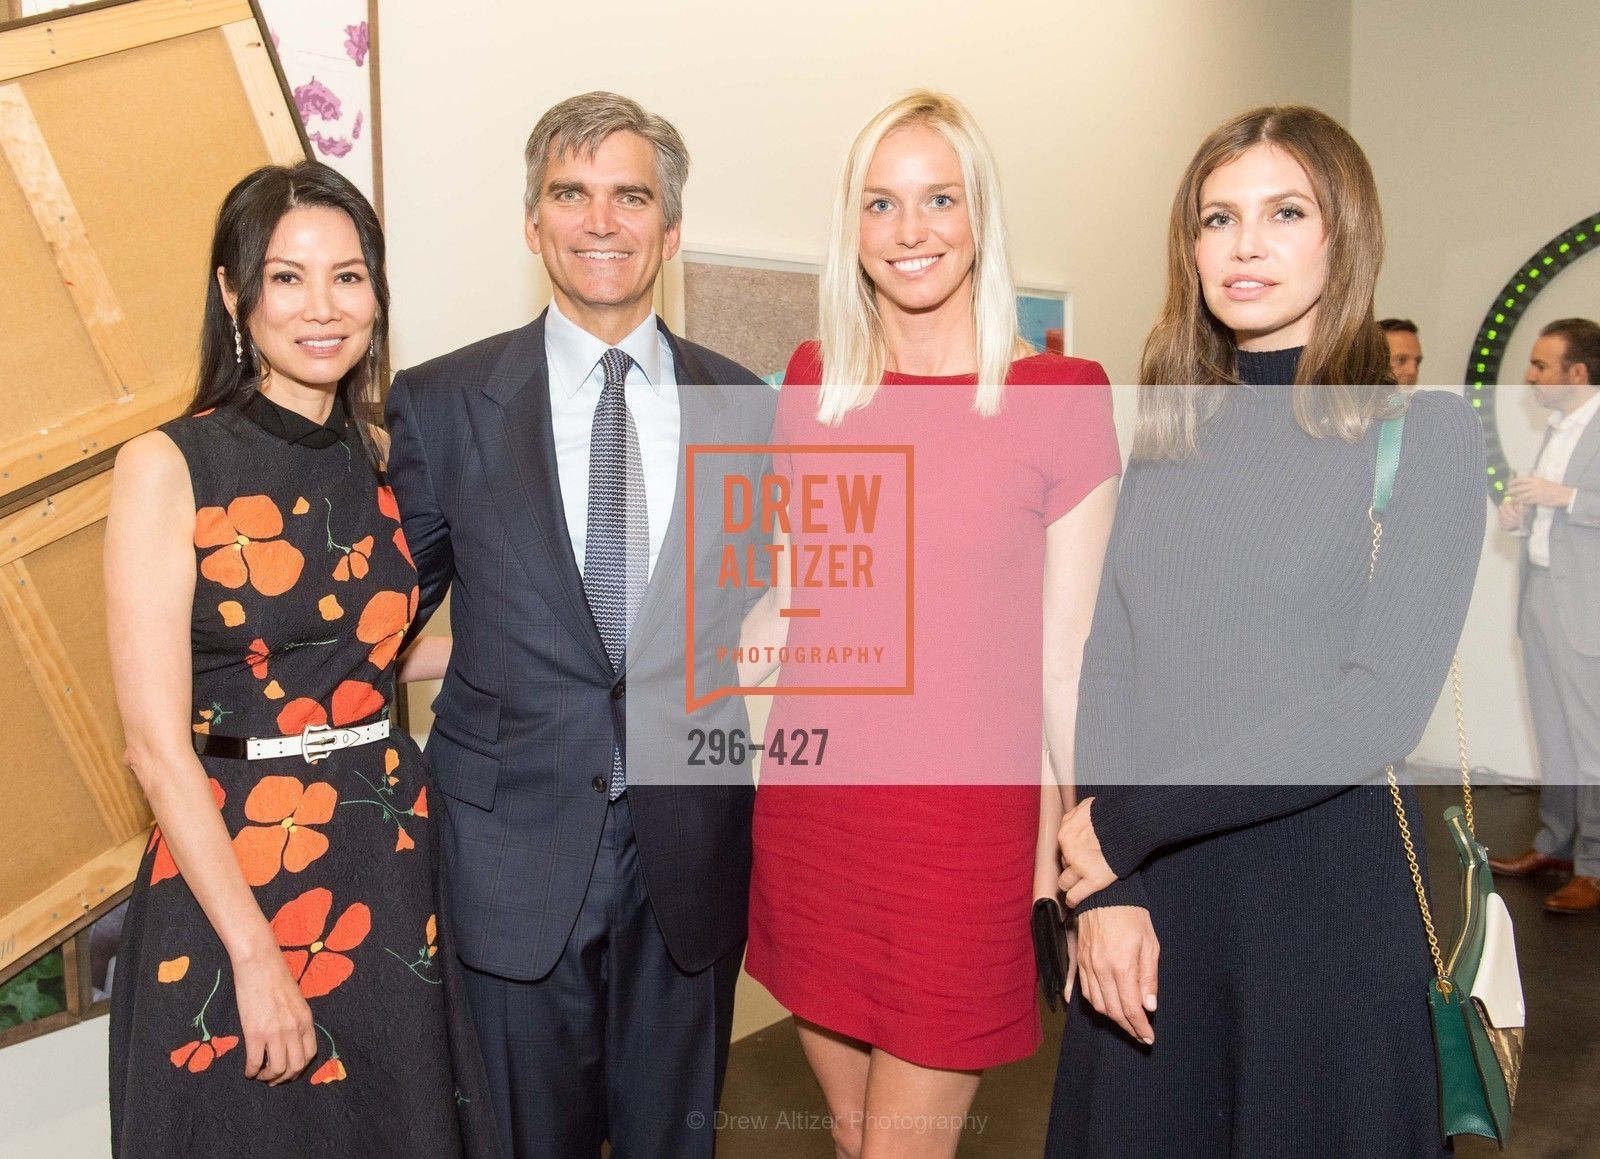 Wendi Murdoch, Tad Smith, Lucy Paige, Dasha Zhukova, Artsy and Sotheby's Dinner at Fused, Fused, October 29th, 2015,Drew Altizer, Drew Altizer Photography, full-service event agency, private events, San Francisco photographer, photographer California